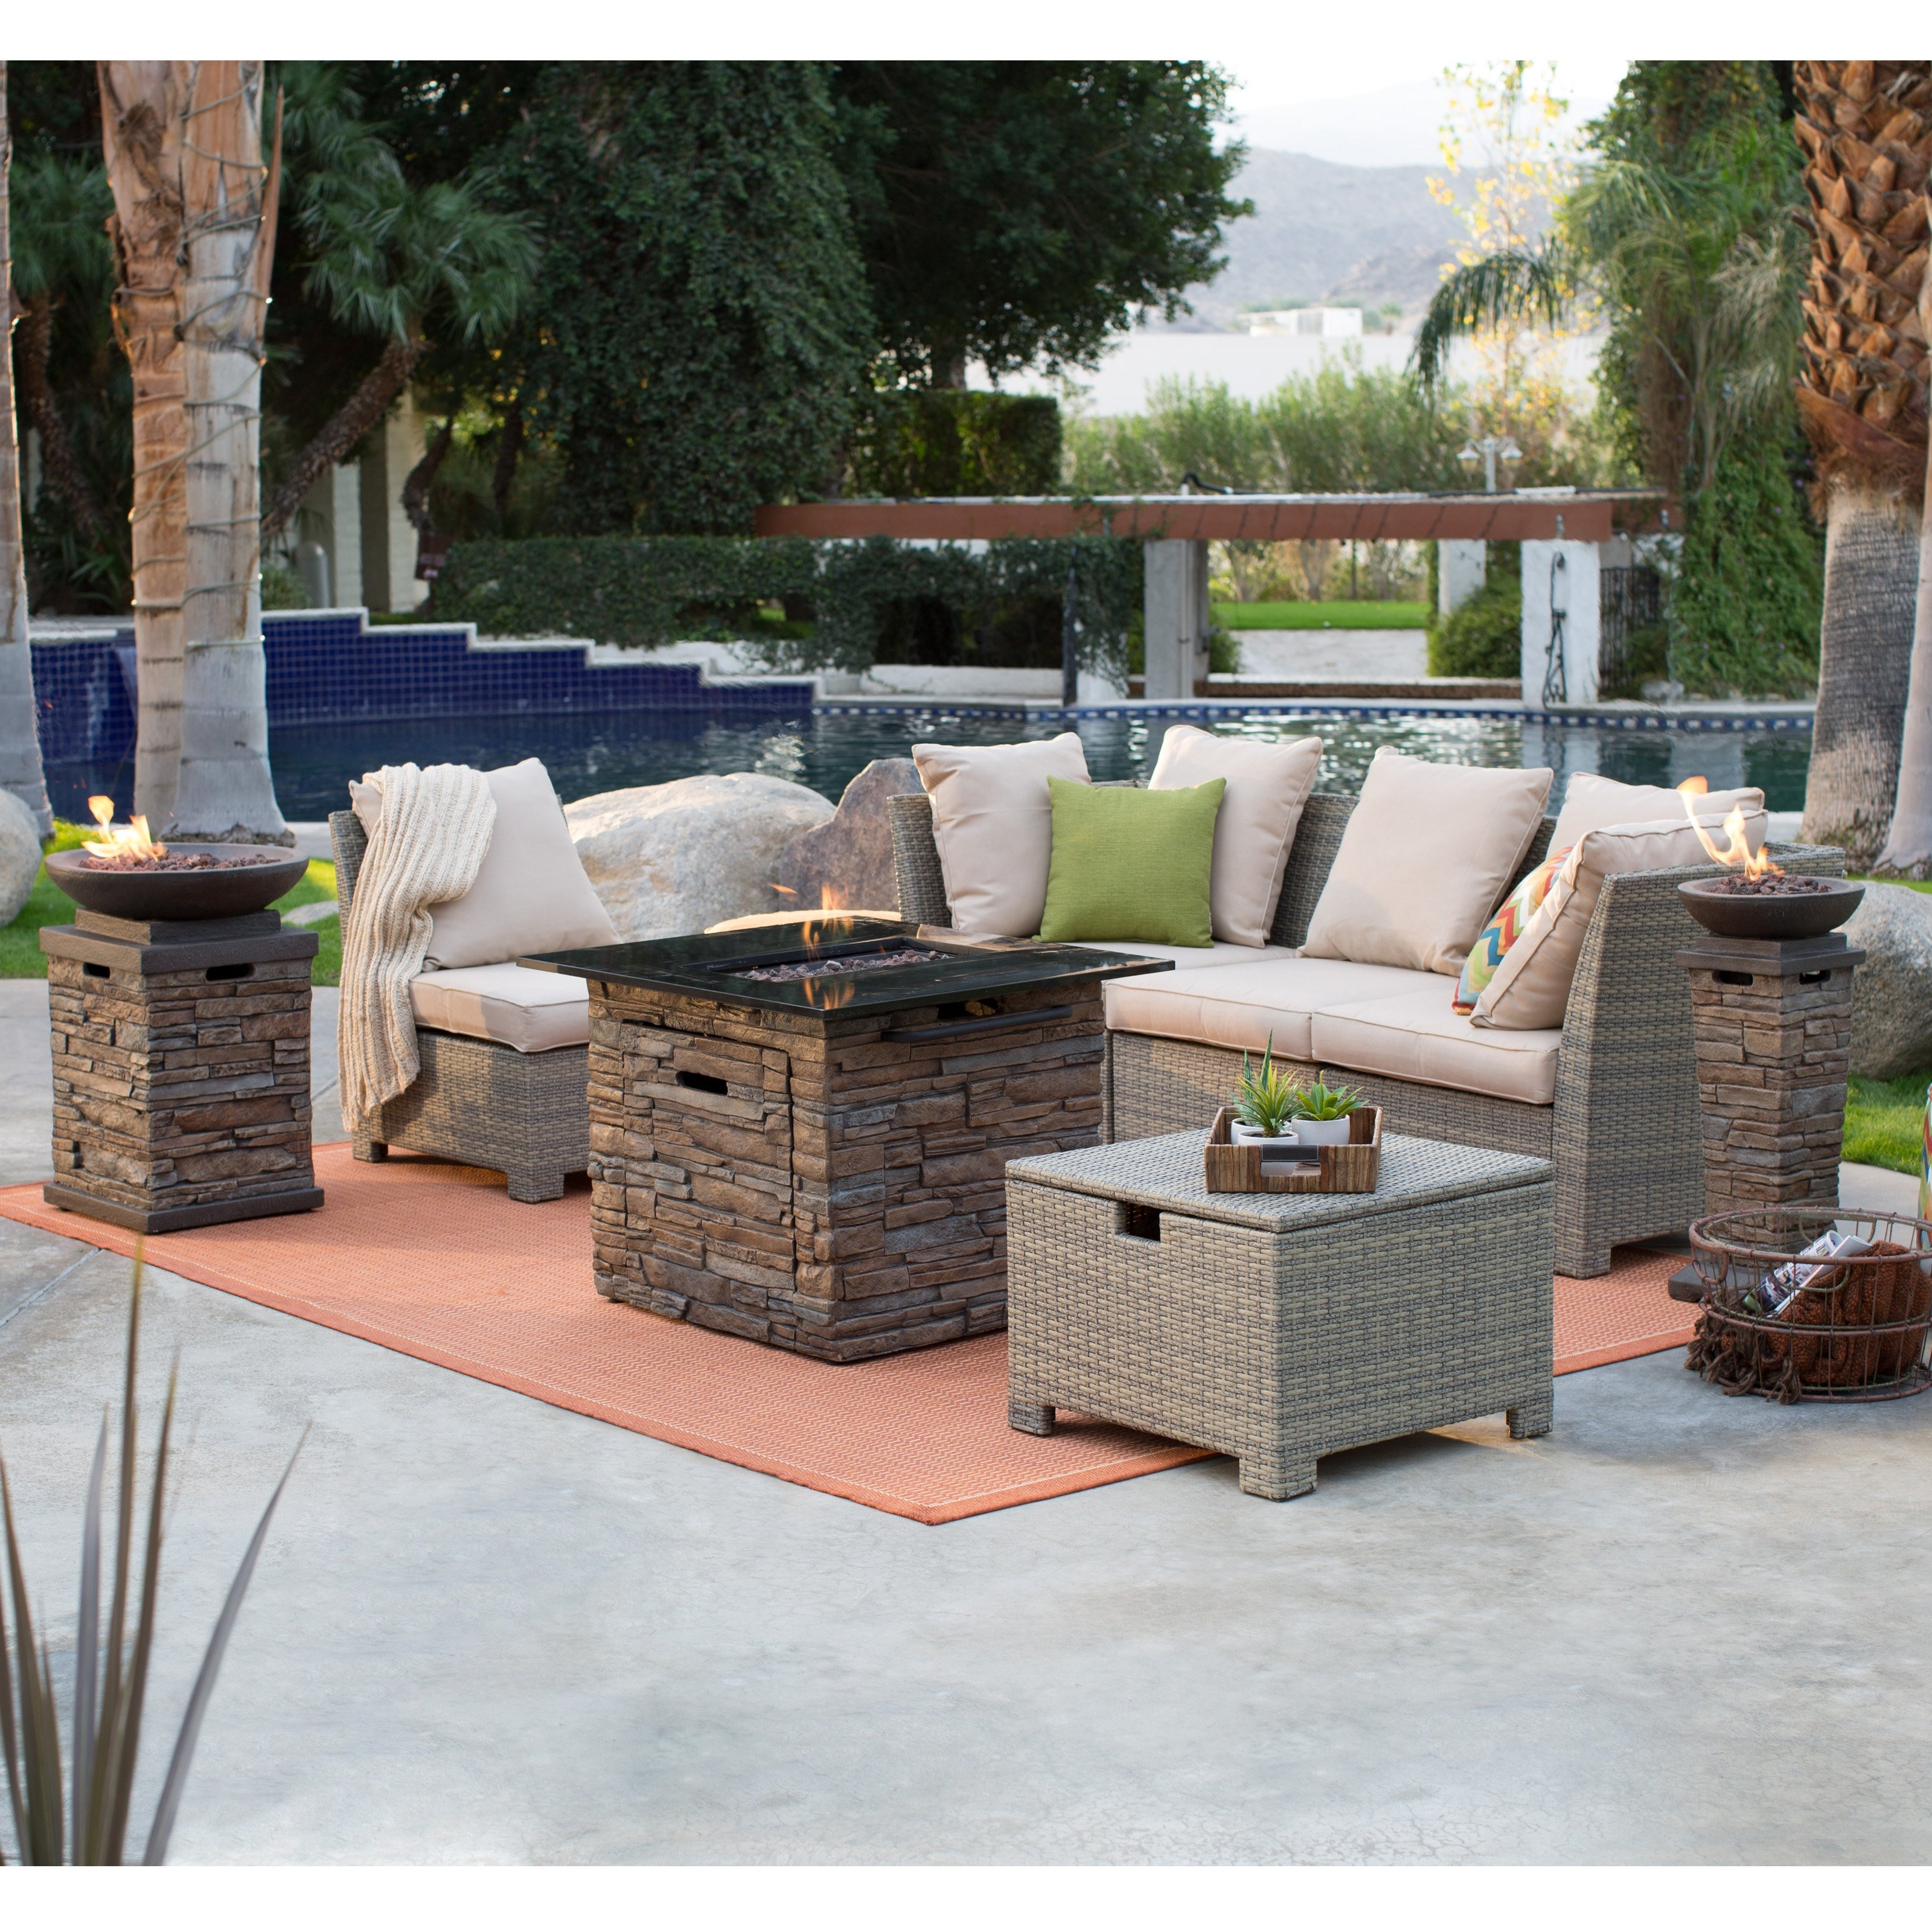 Most Recently Released Unlimited Gas Fire Pit Conversation Set Fortune Outdoor Patio With With Regard To Patio Conversation Sets With Propane Fire Pit (View 4 of 15)